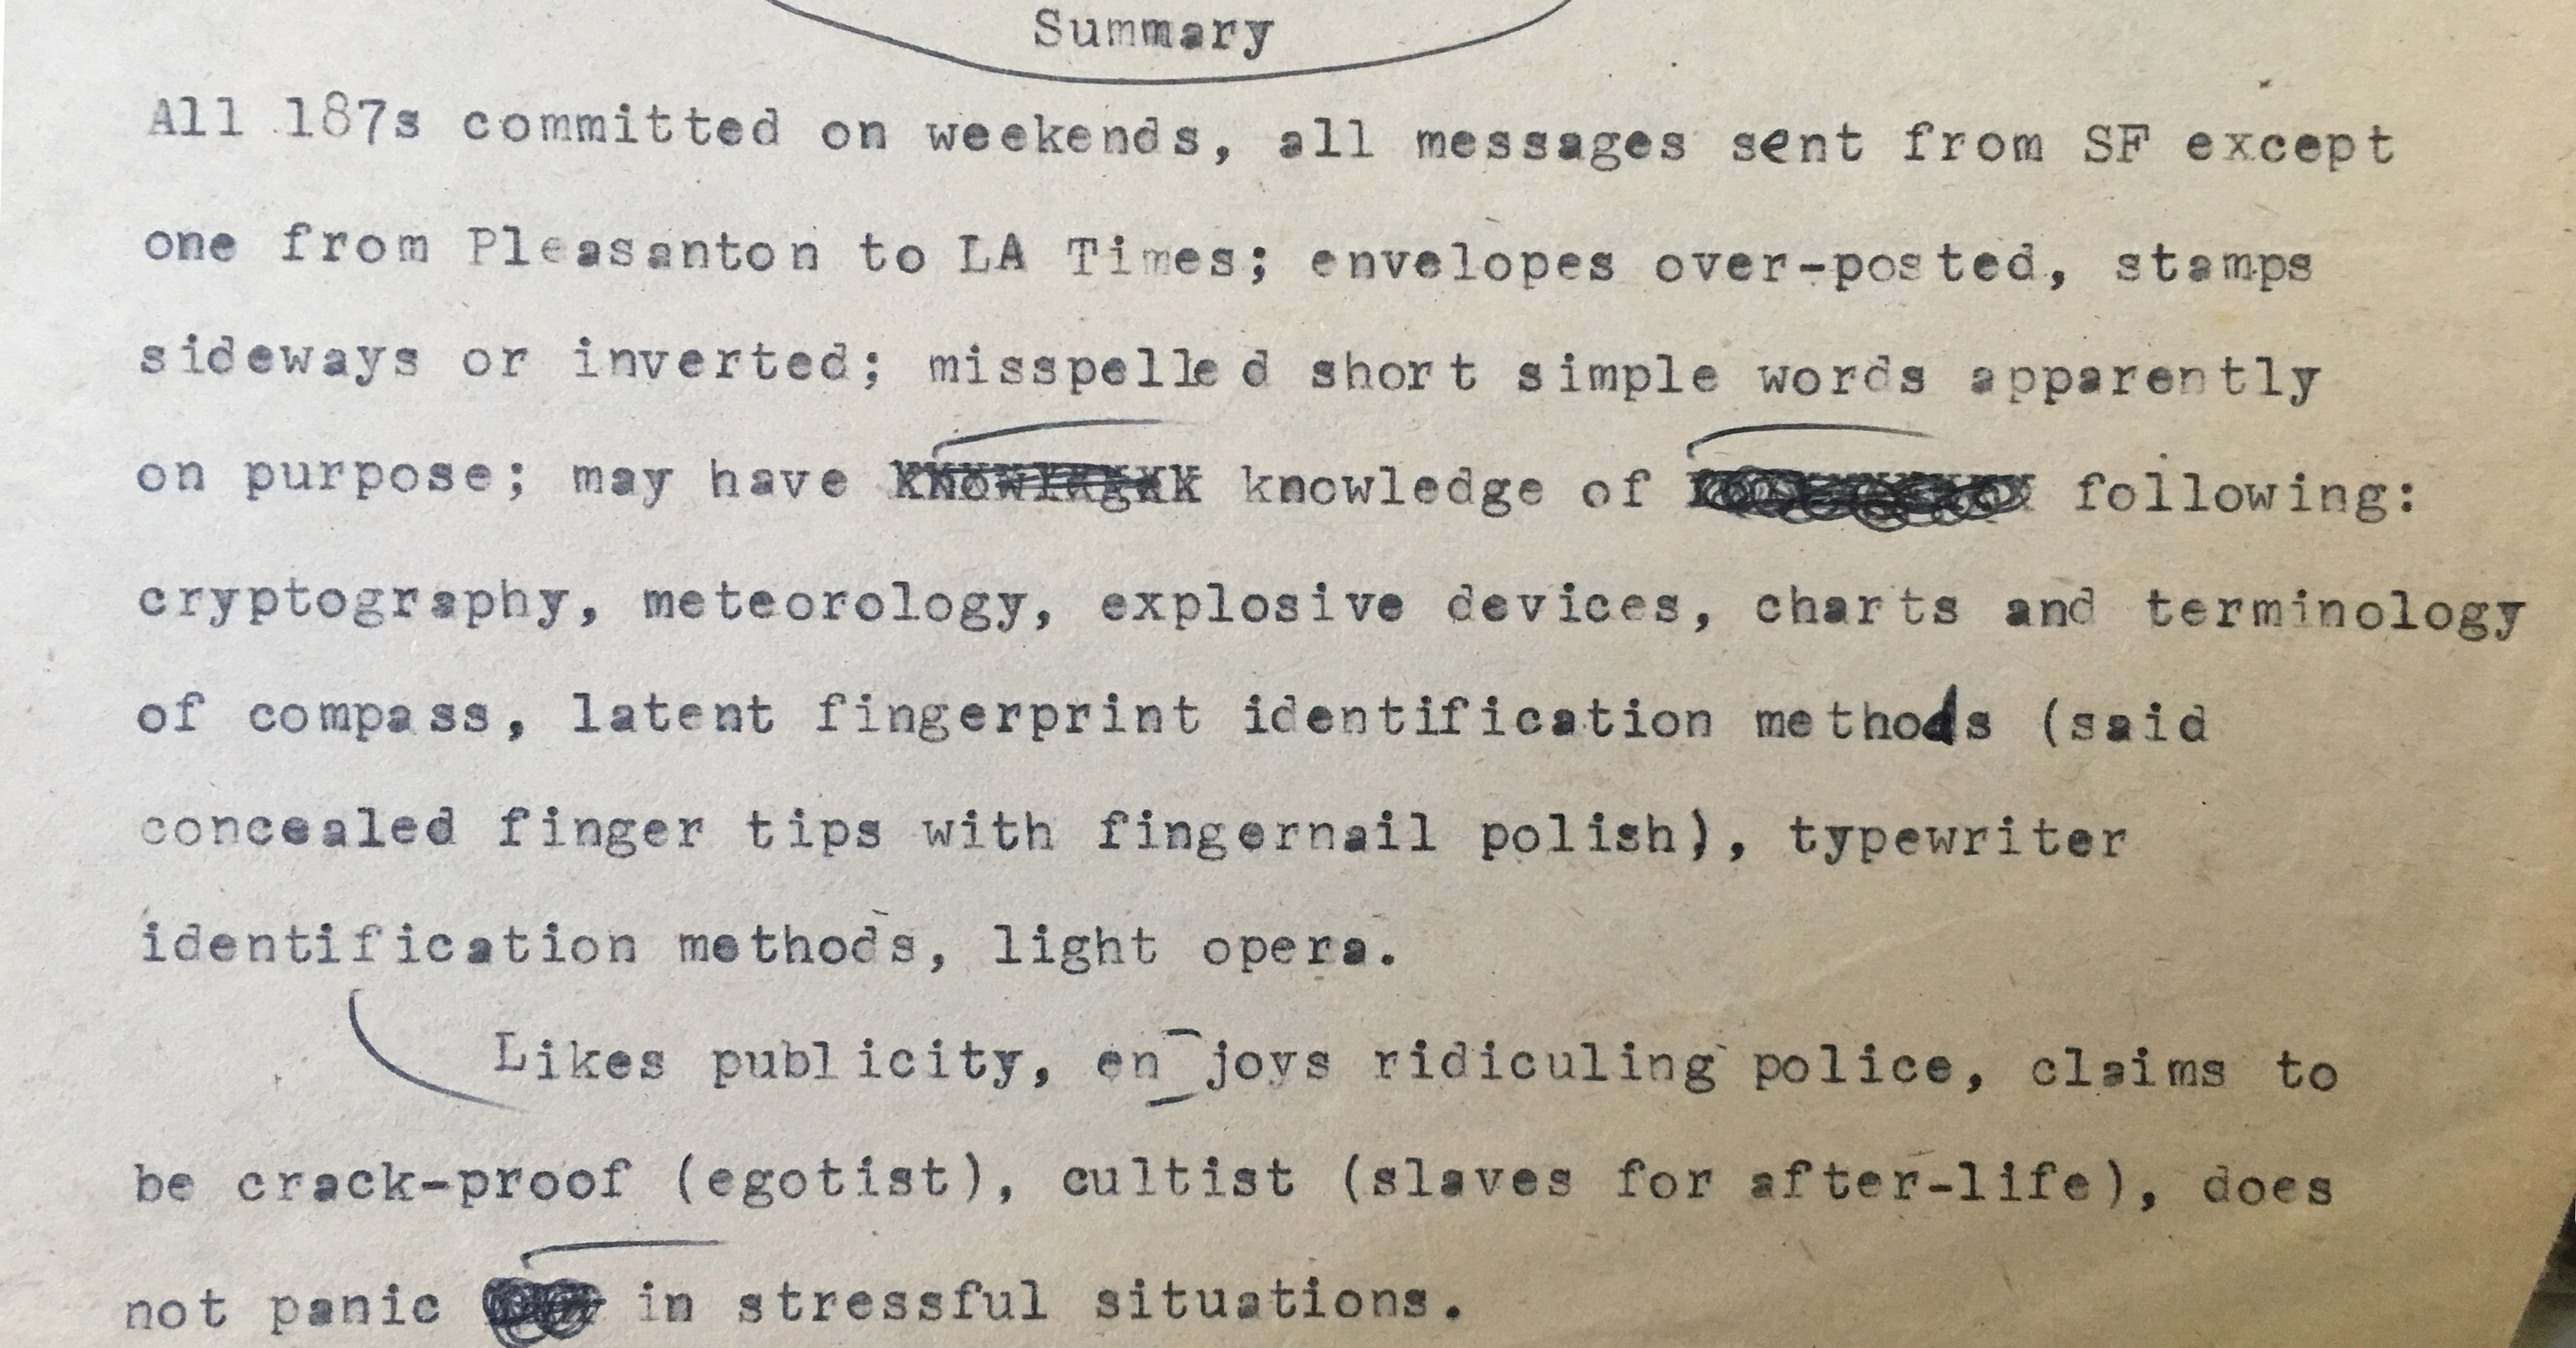 First Look: Exclusive Documents from a Zodiac Killer